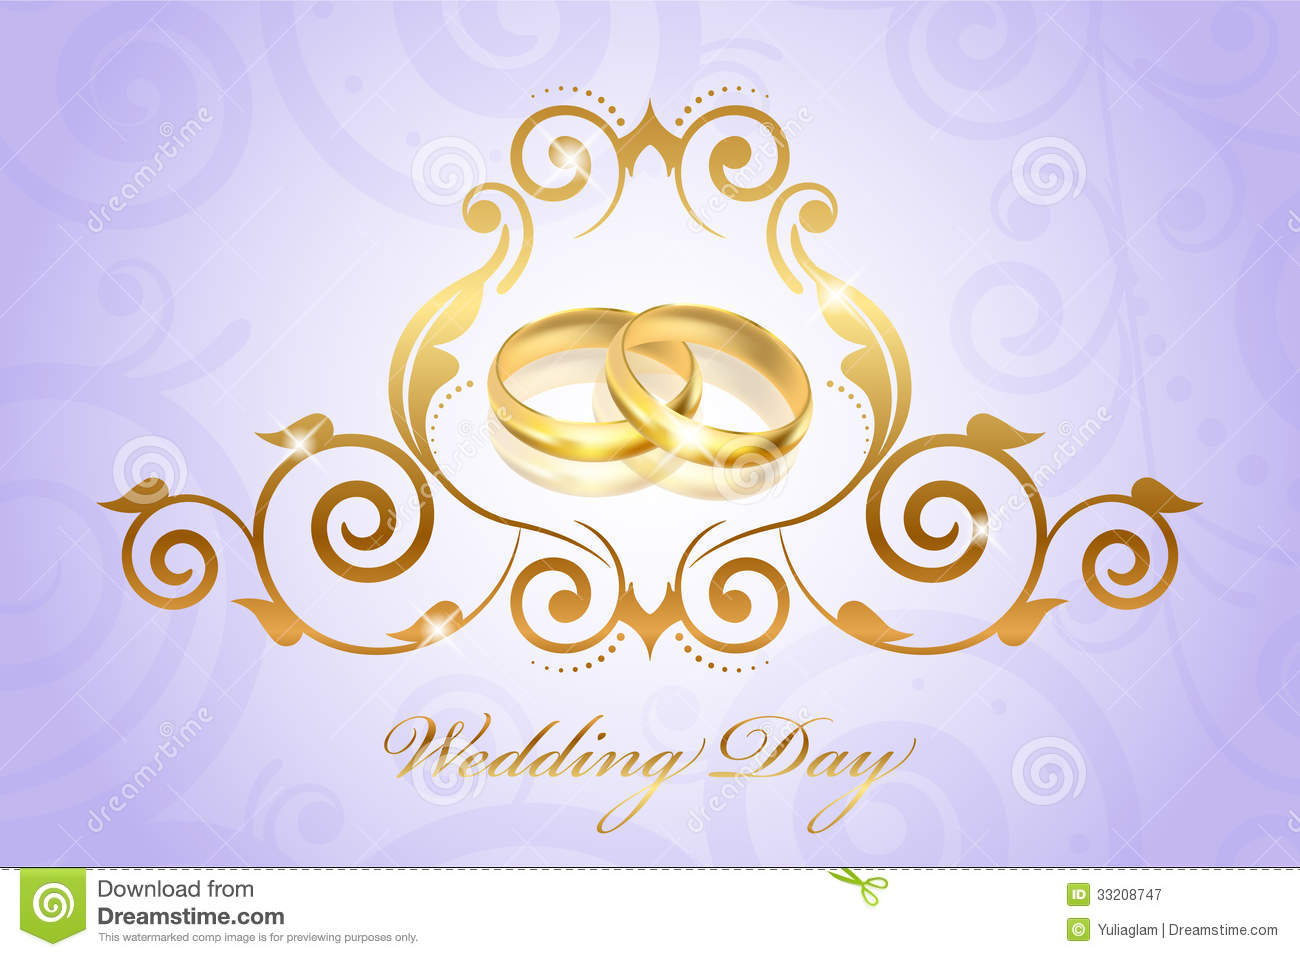 Wedding Invitations Prices with best invitation template